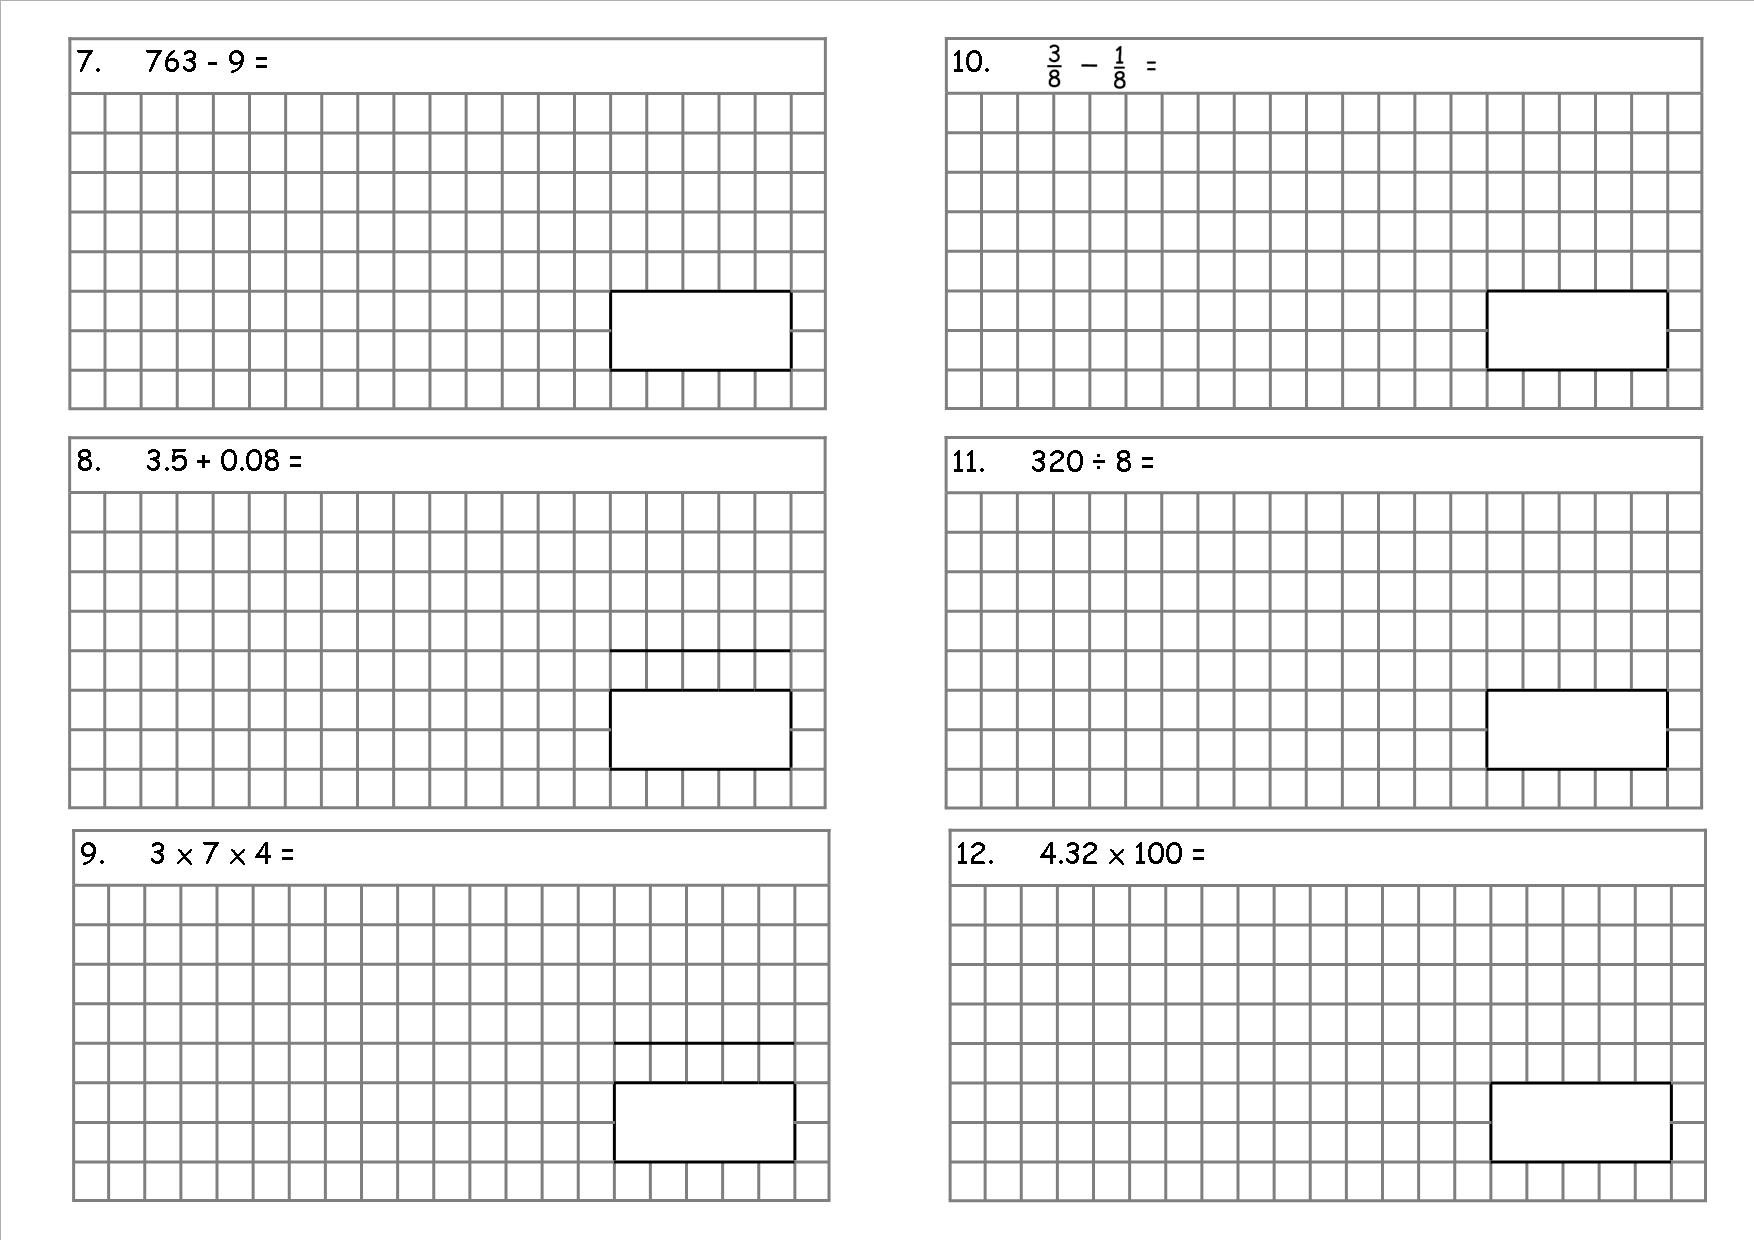 timetable maths worksheets worksheet workbook site worksheets for year 6 sats k5 learning worksheets